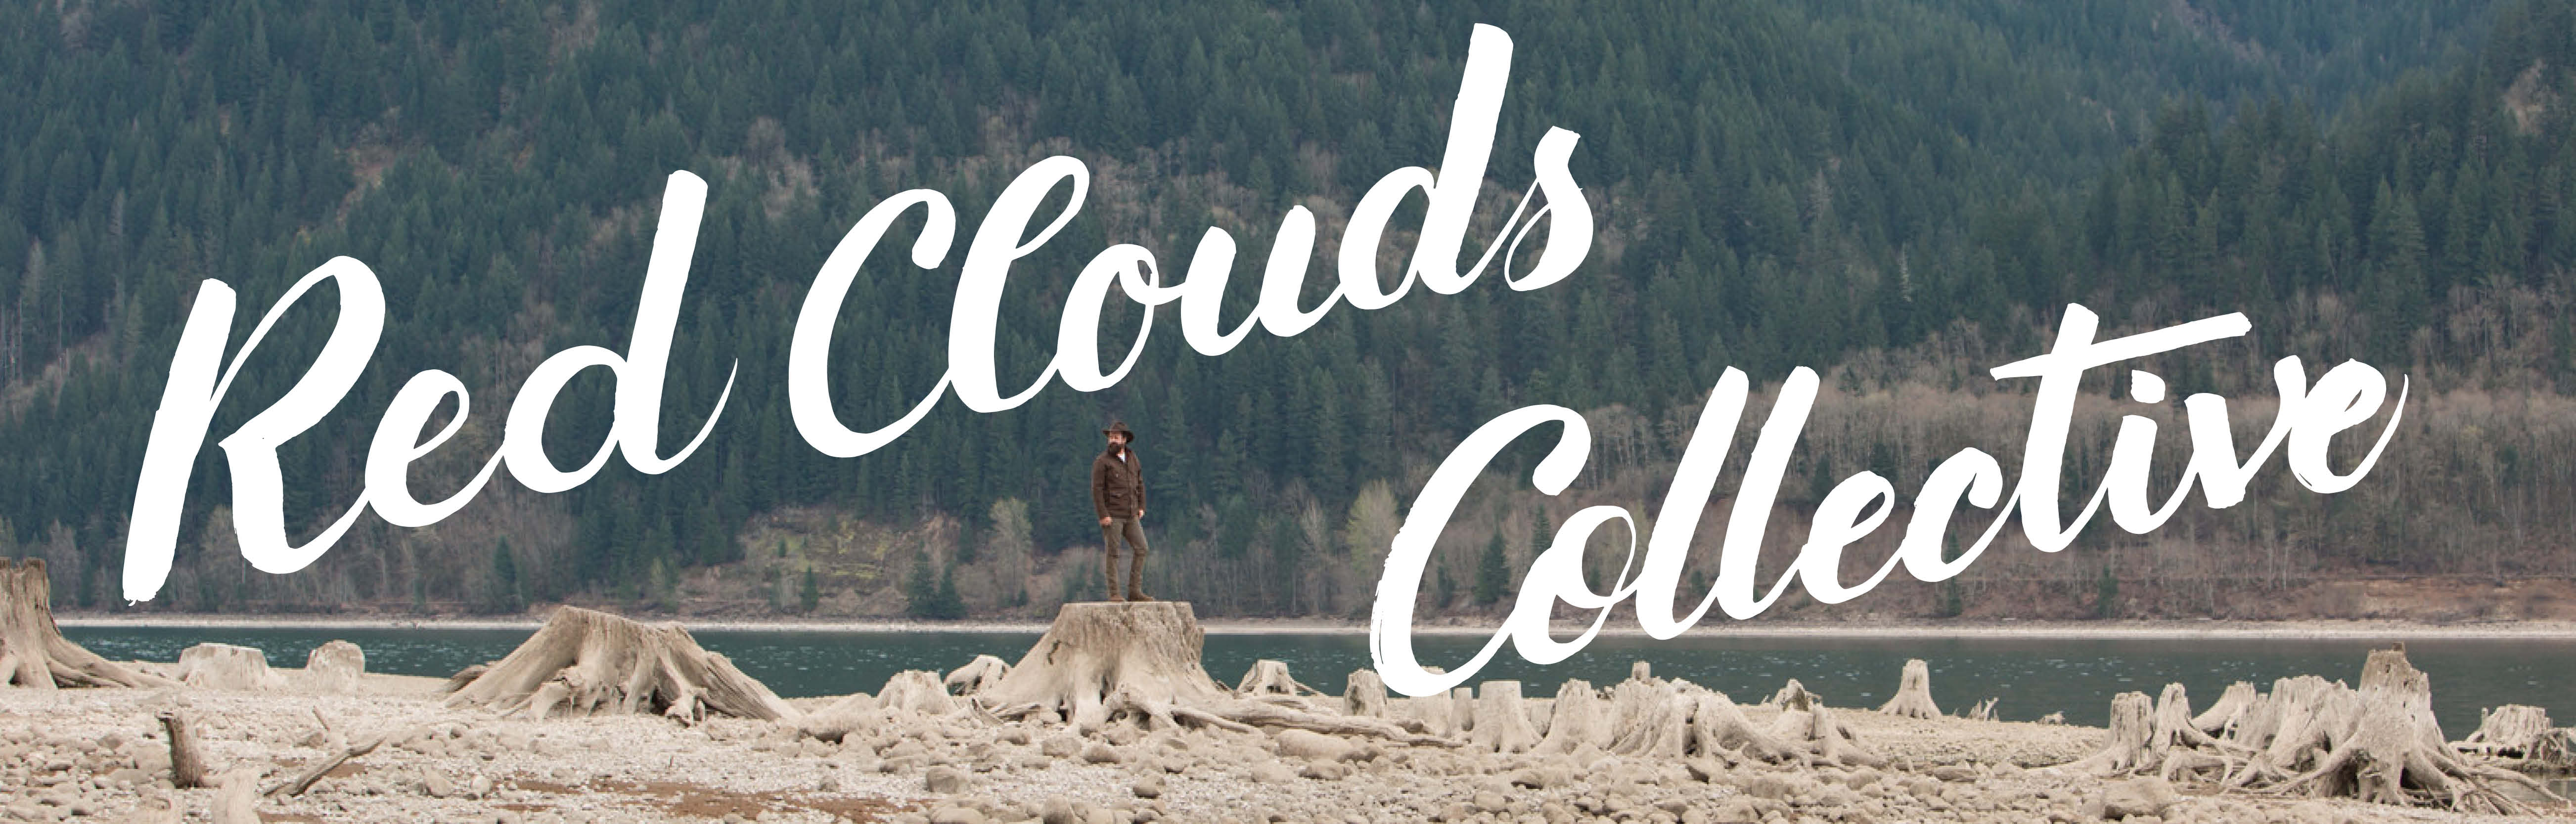 Red Clouds Collective